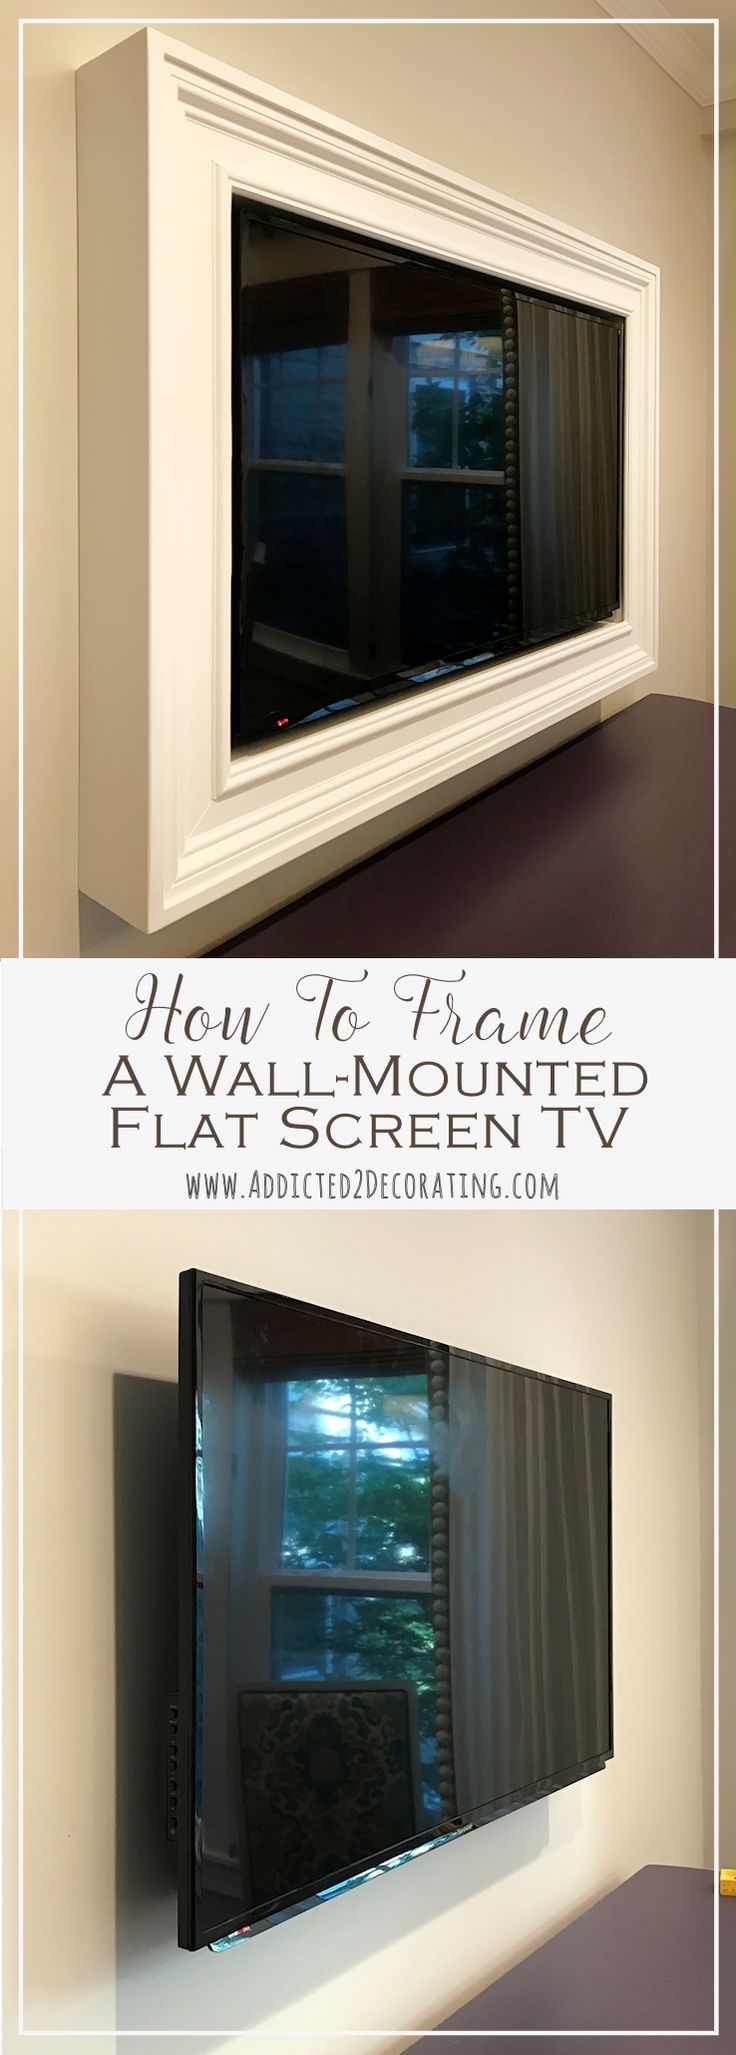 Custom DIY Frame For Wall-Mounted TV – Finished!